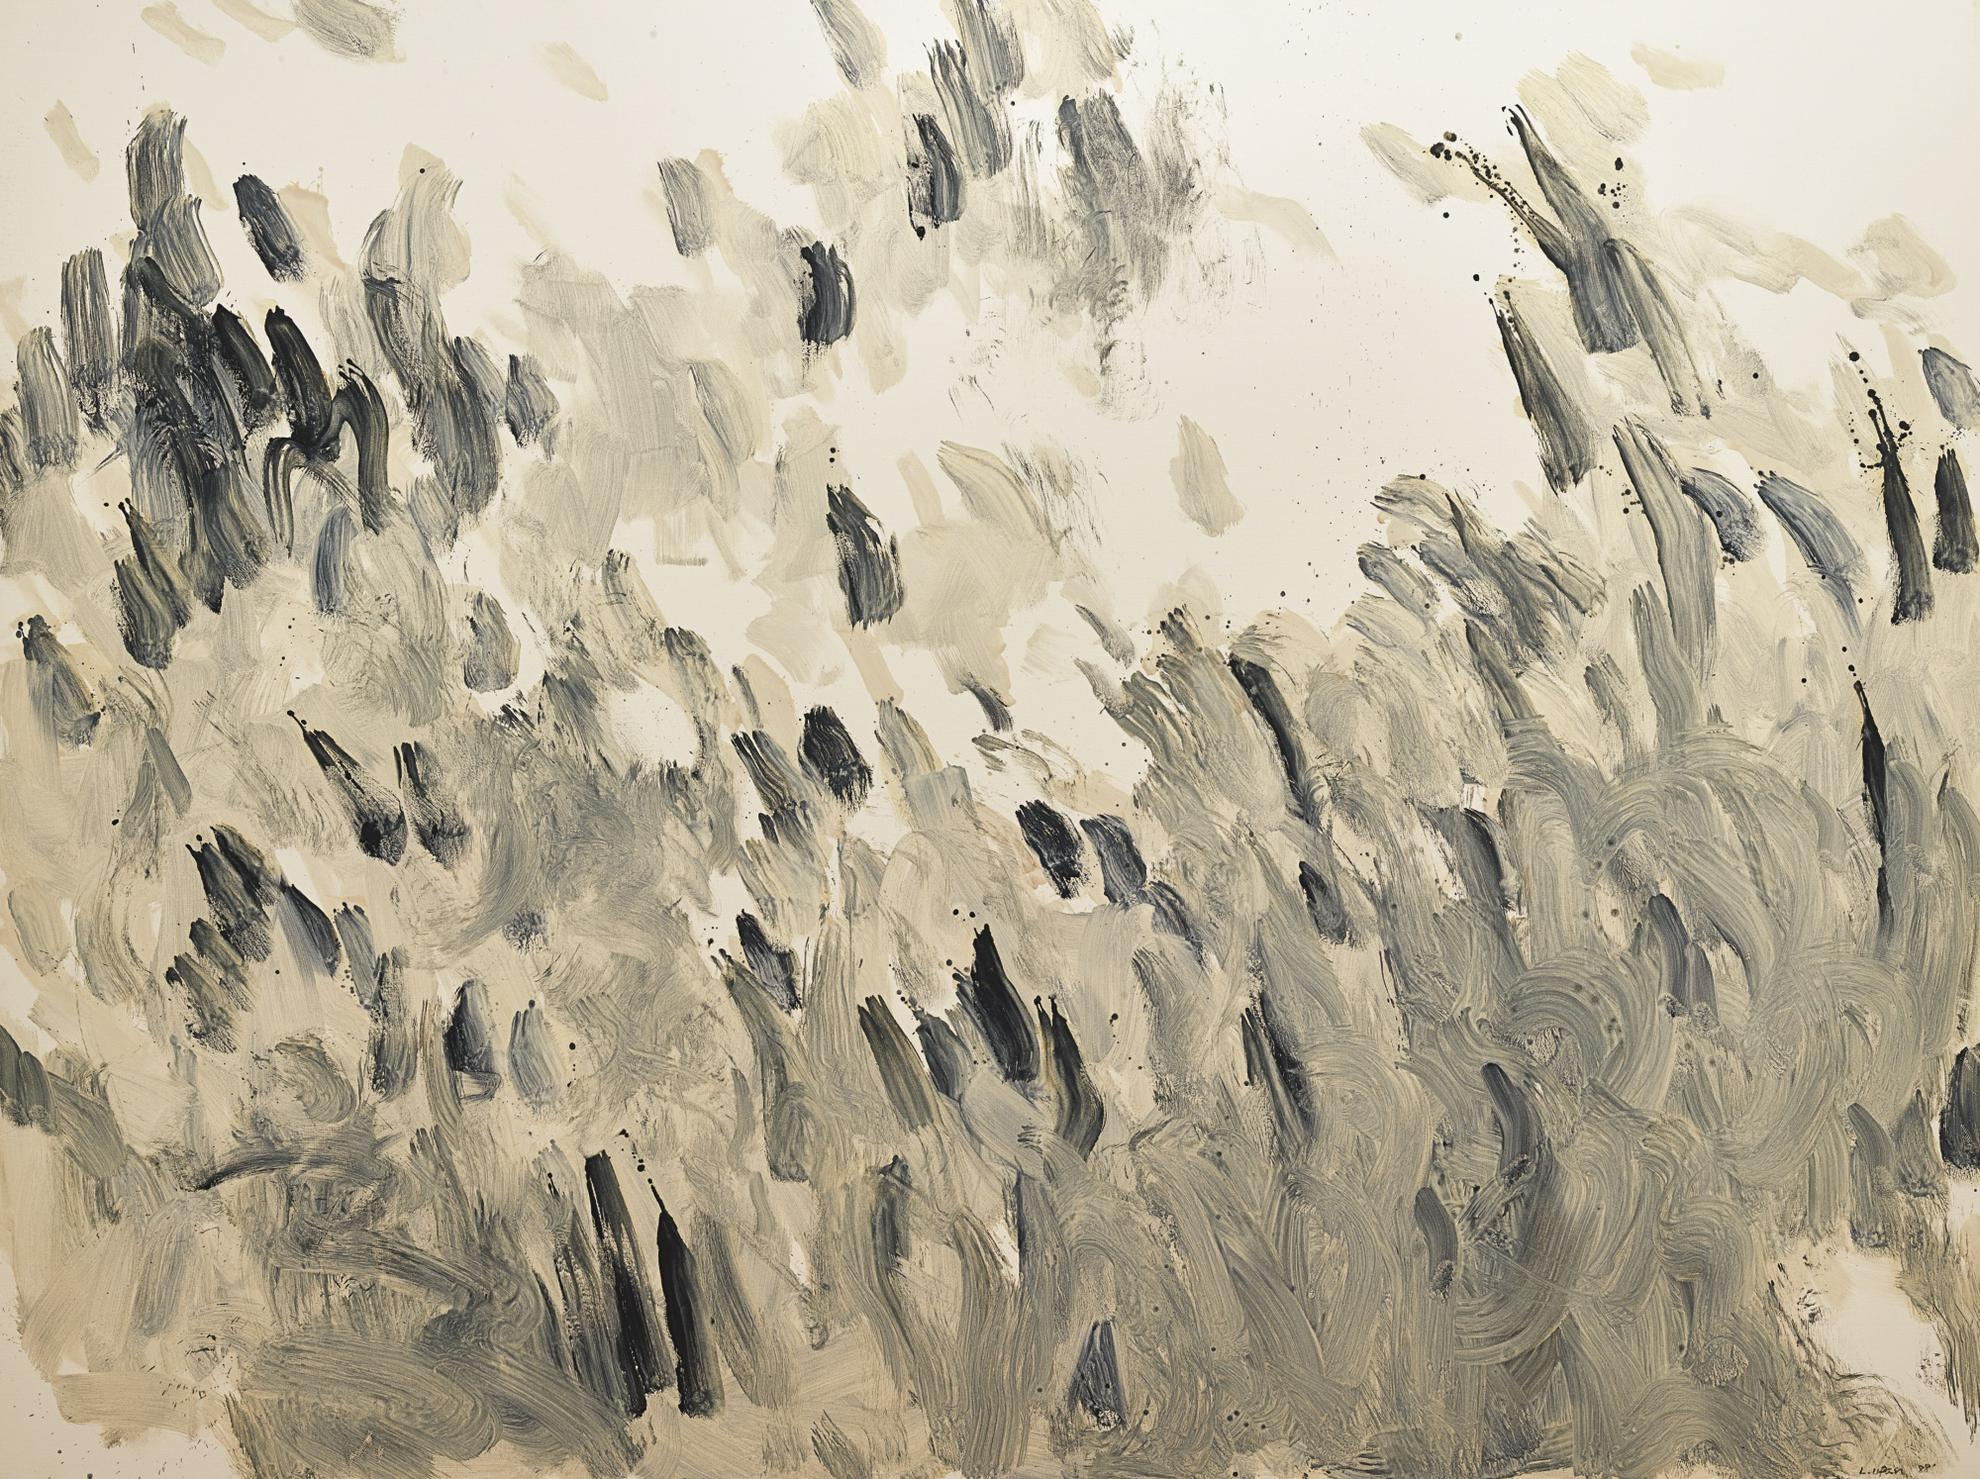 Lee Ufan-With Winds-1988